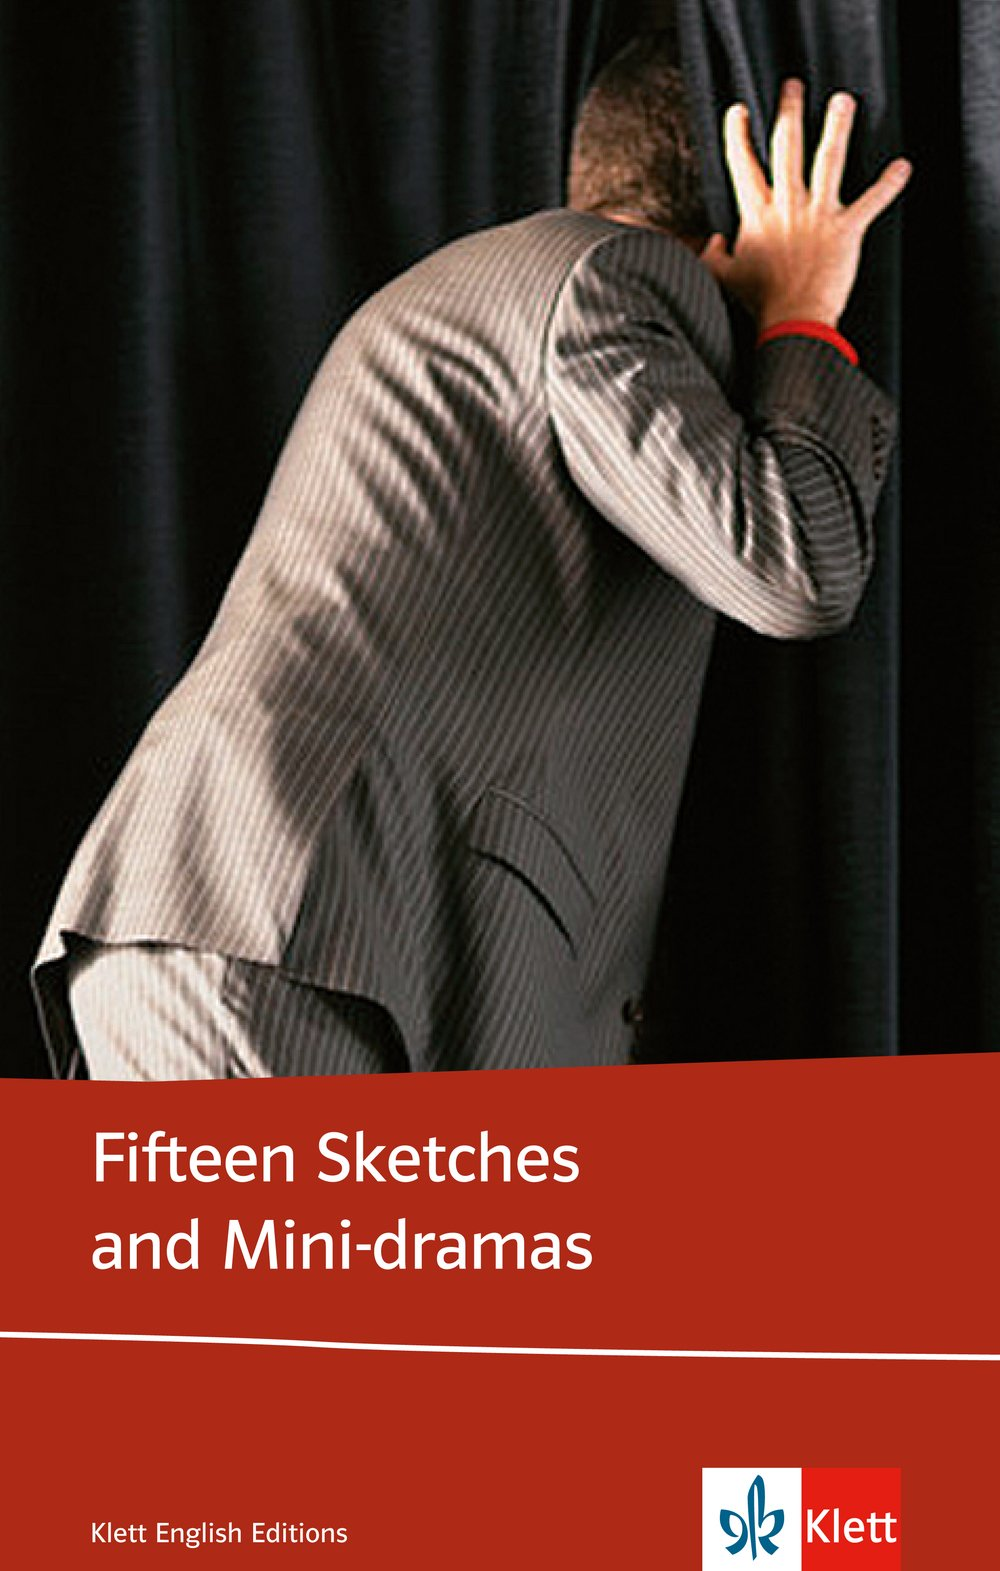 Fifteen Sketches and Mini-dramas: Englische Lektüre für die Oberstufe (Klett English Editions)